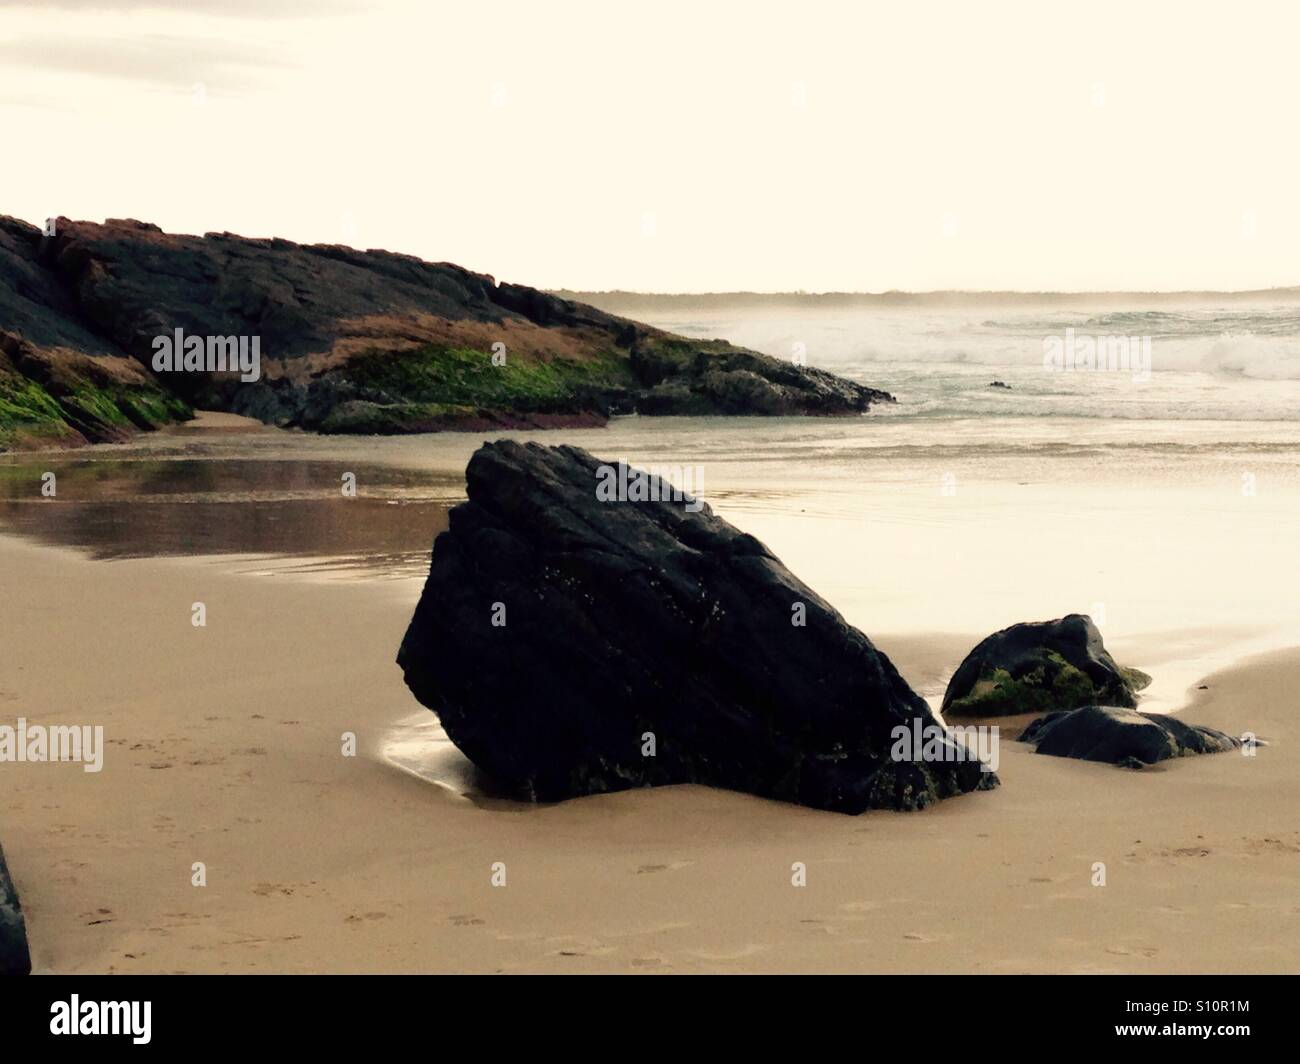 Sturdy Rock by the Beach Side, the power of gentle waves wearing away at a steadfast Rock over Time, Patience. - Stock Image